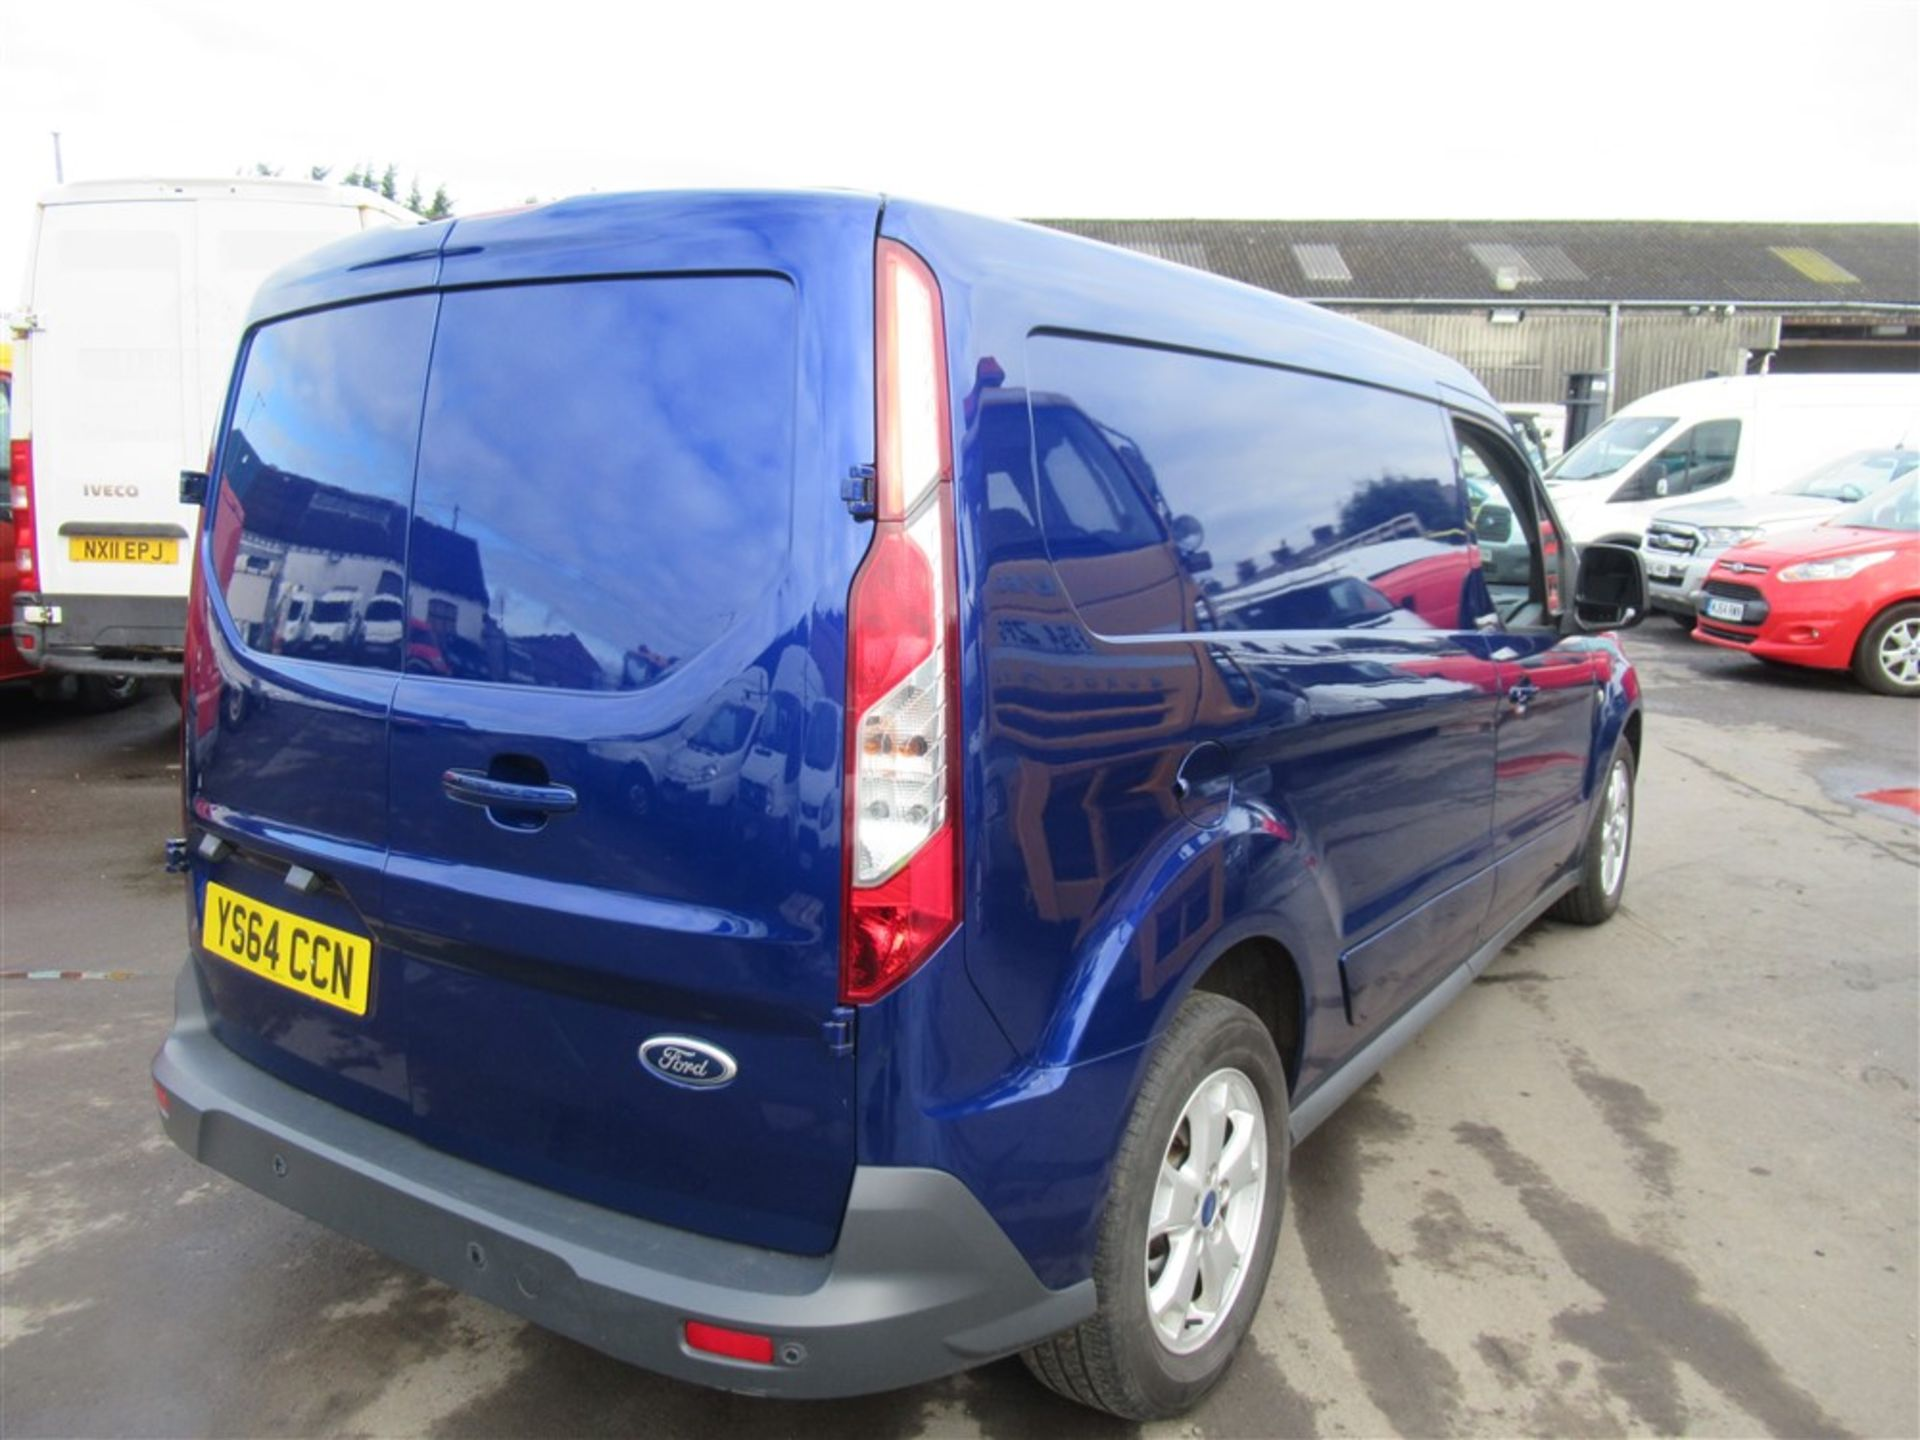 64 reg FORD TRANSIT CONNECT 240 LIMITED, 1ST REG 12/14, 128144M WARRANTED, V5 HERE, 1 OWNER FROM NEW - Image 4 of 7